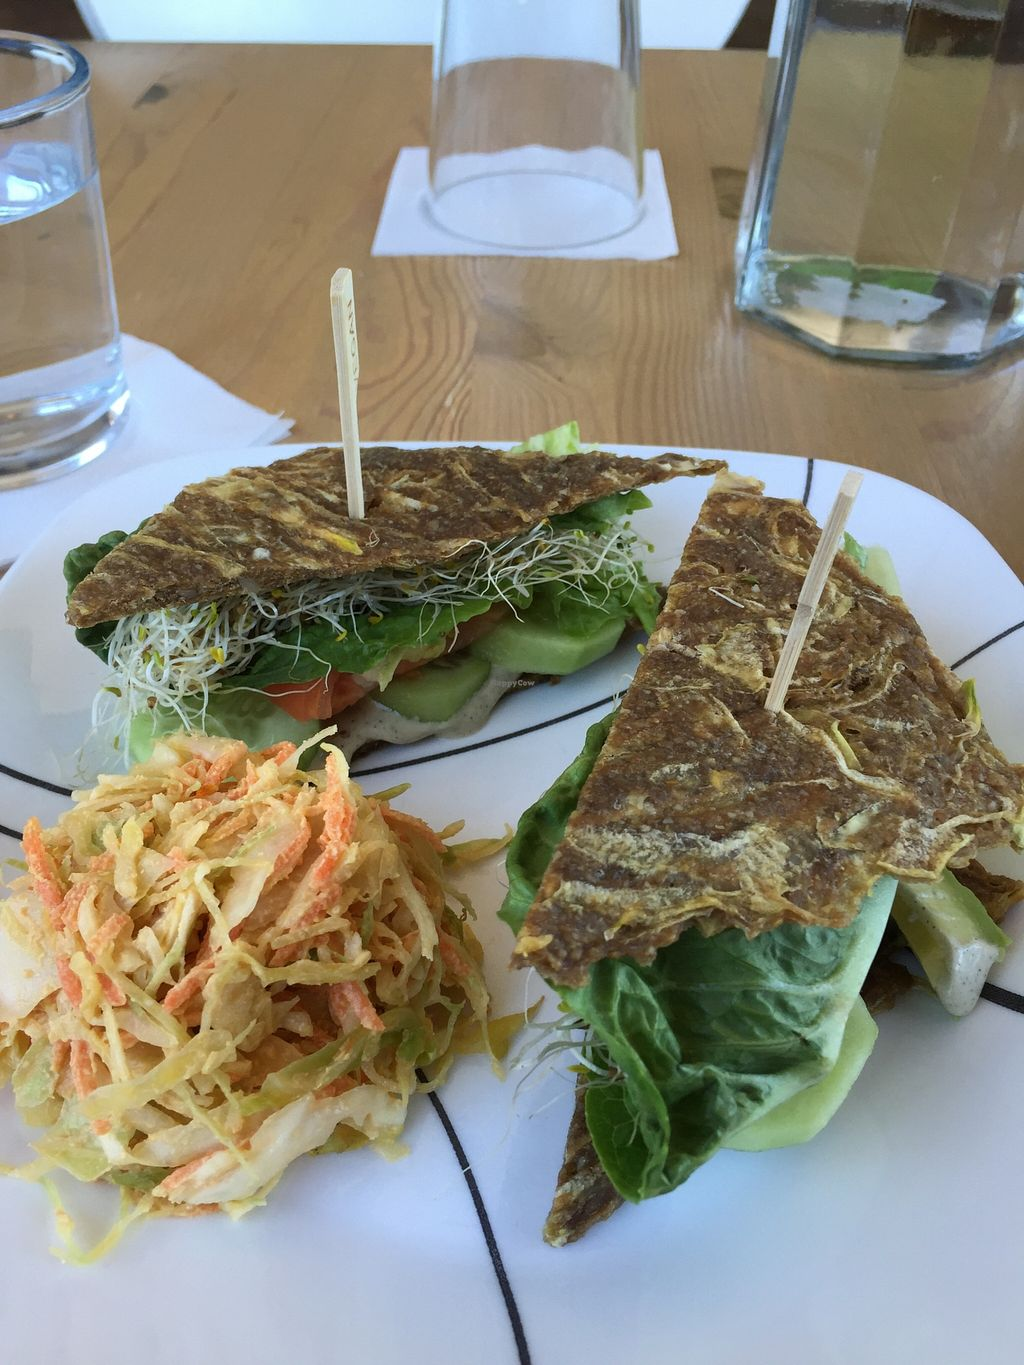 """Photo of CLOSED: Vitality Bistro  by <a href=""""/members/profile/ijk"""">ijk</a> <br/>California Simple Sandwich <br/> February 29, 2016  - <a href='/contact/abuse/image/33169/138191'>Report</a>"""